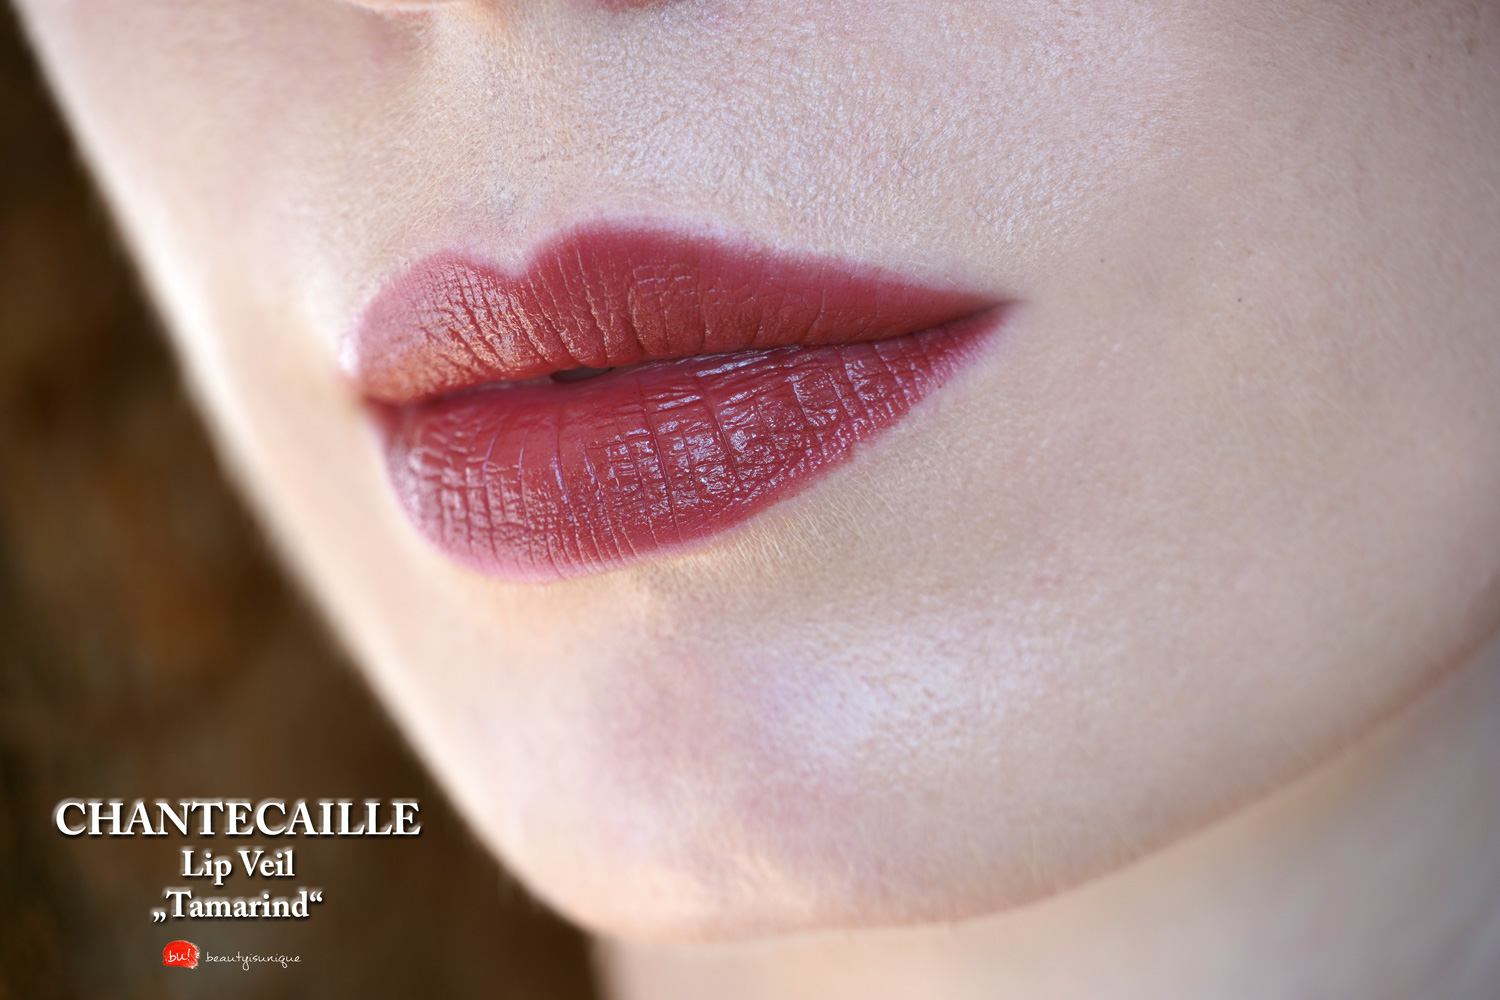 chantecaille-lip-veil-tamarind-swatches